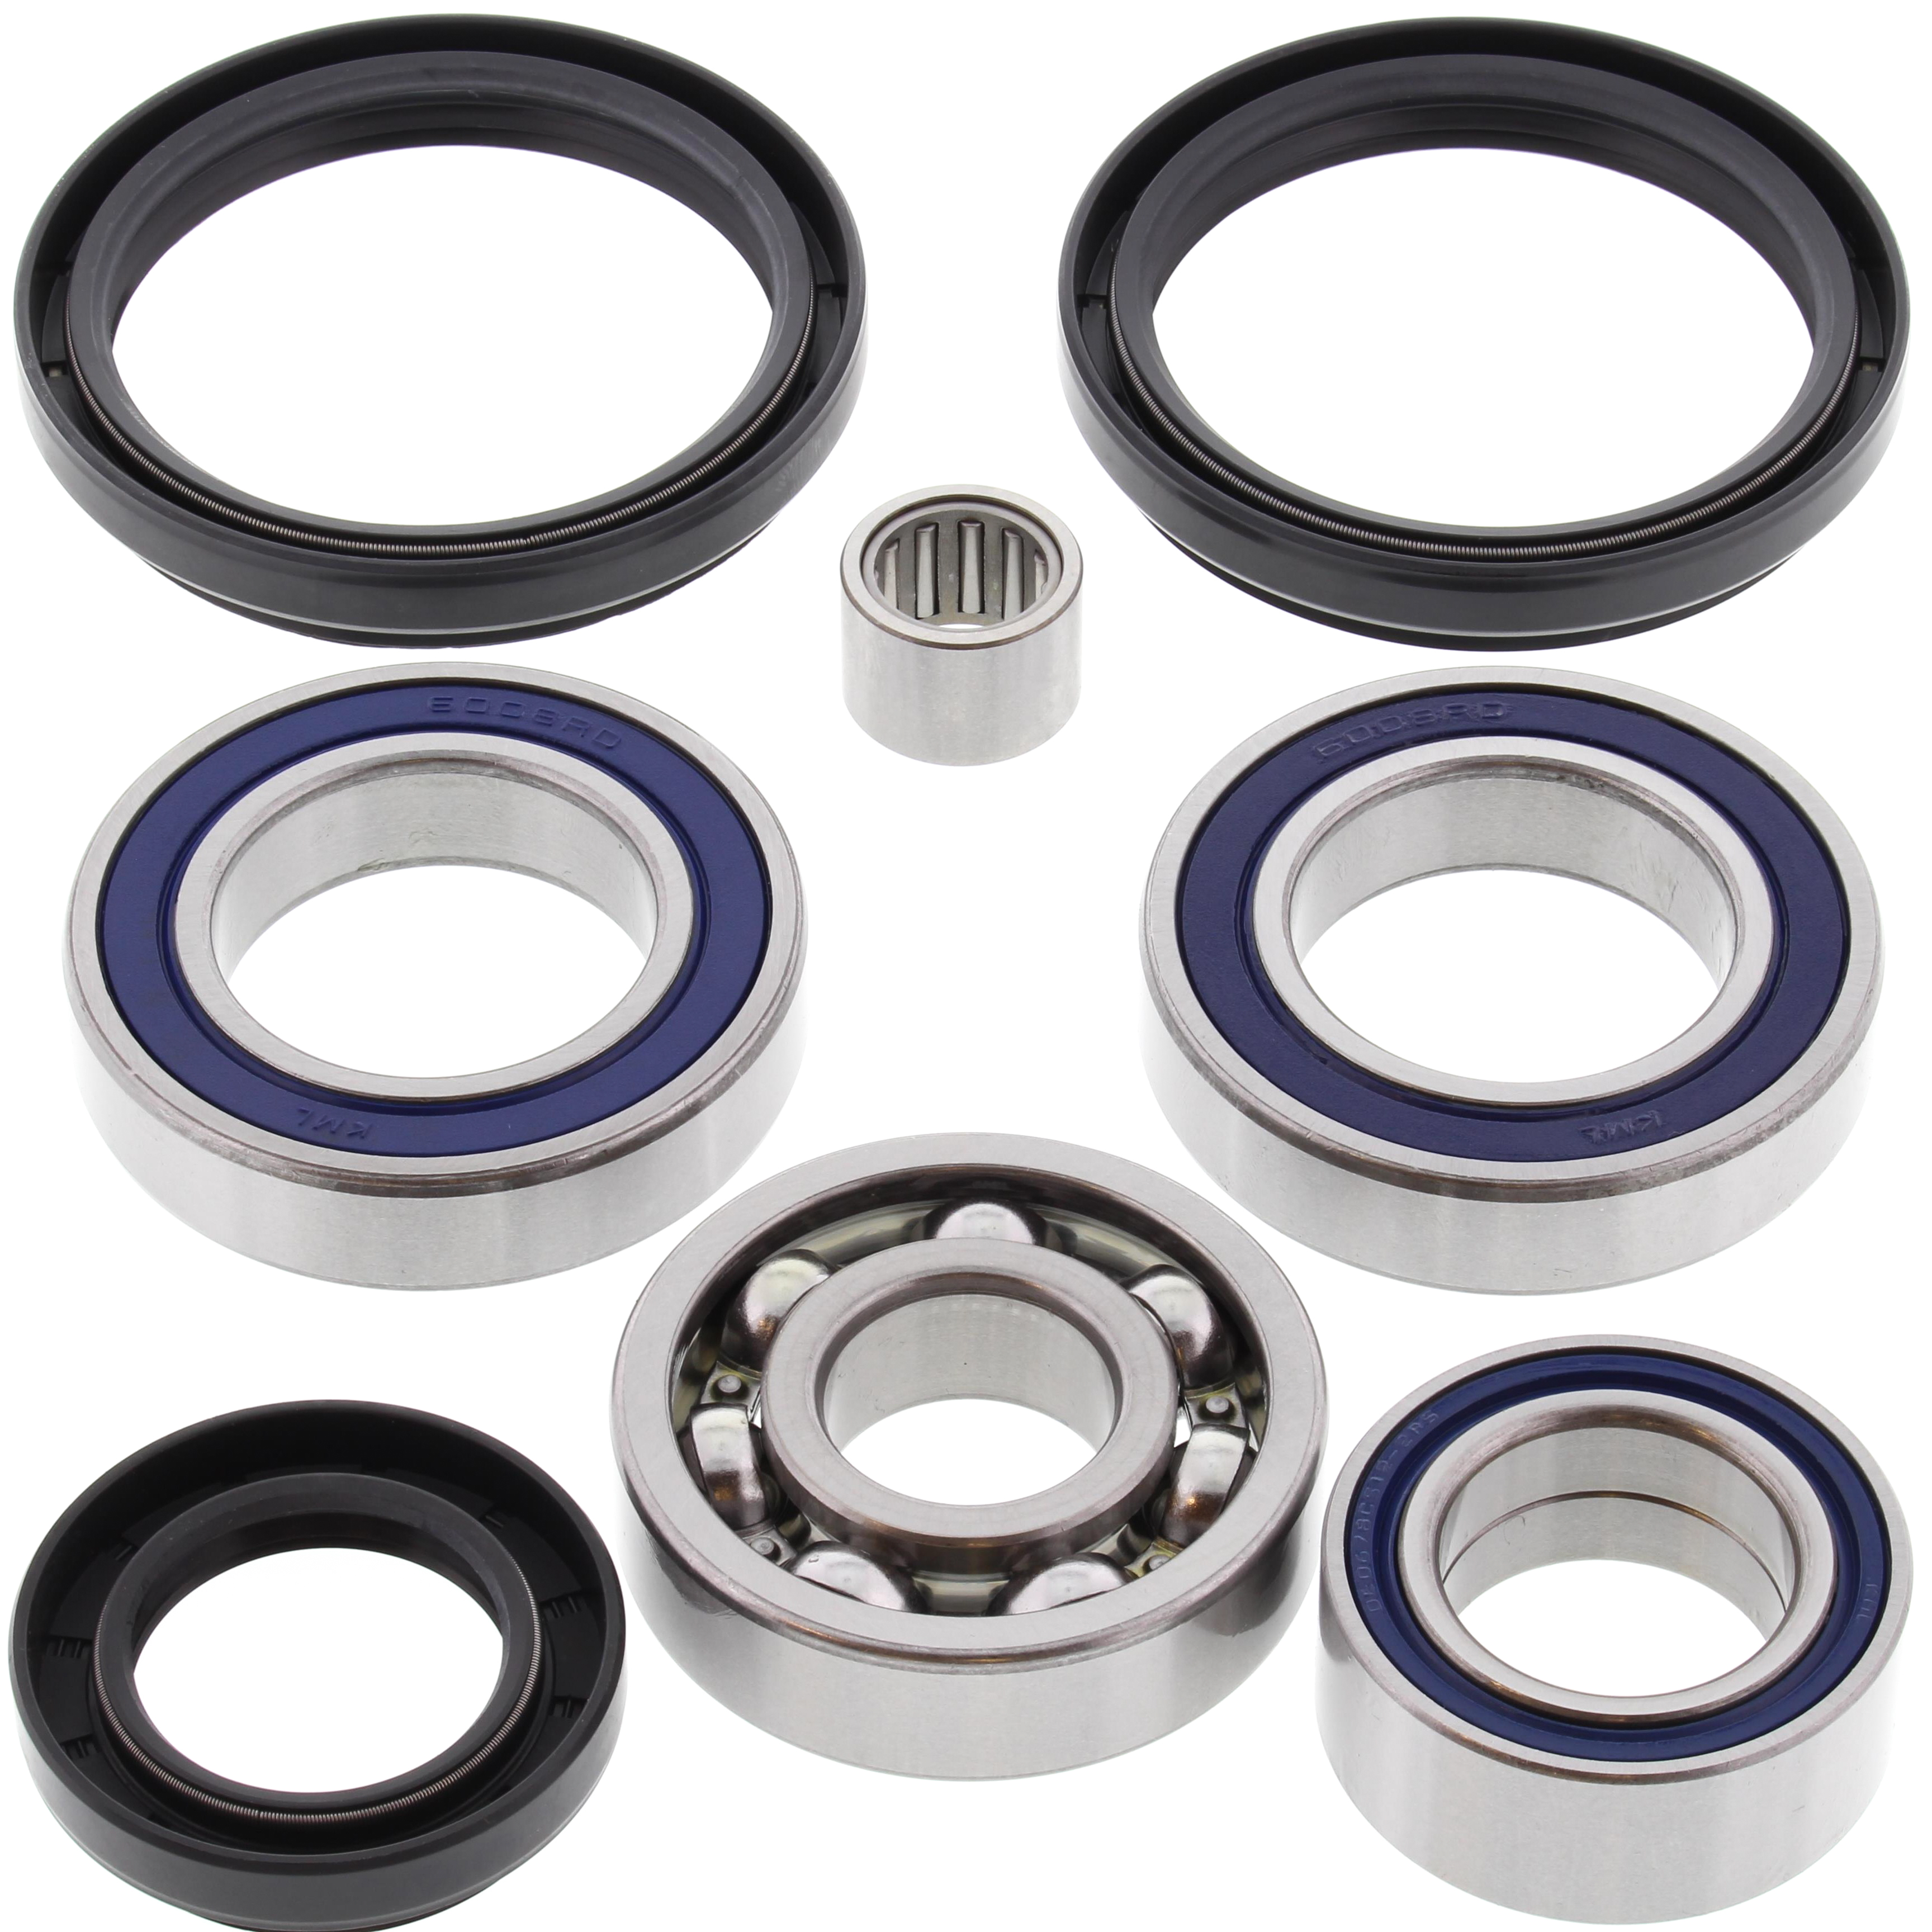 New Rear Differential Bearing Kit Arctic Cat 500 FIS TRV ...